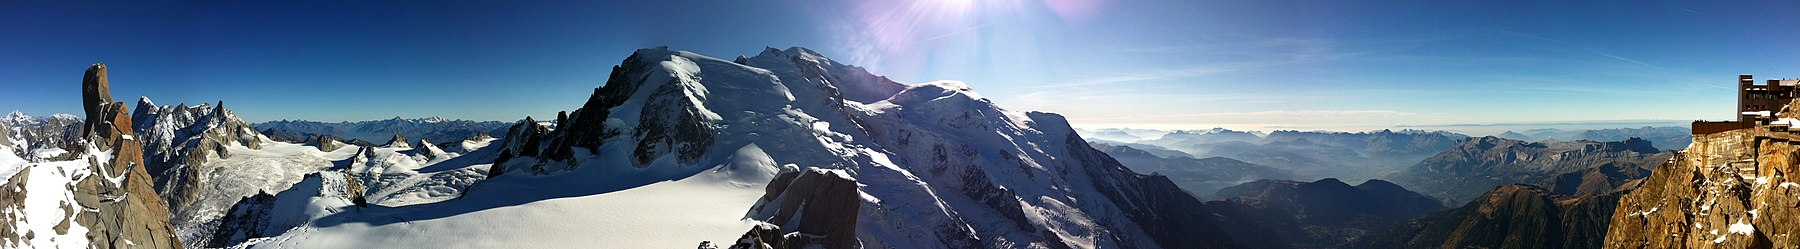 Mt Blanc full Panorama.jpg